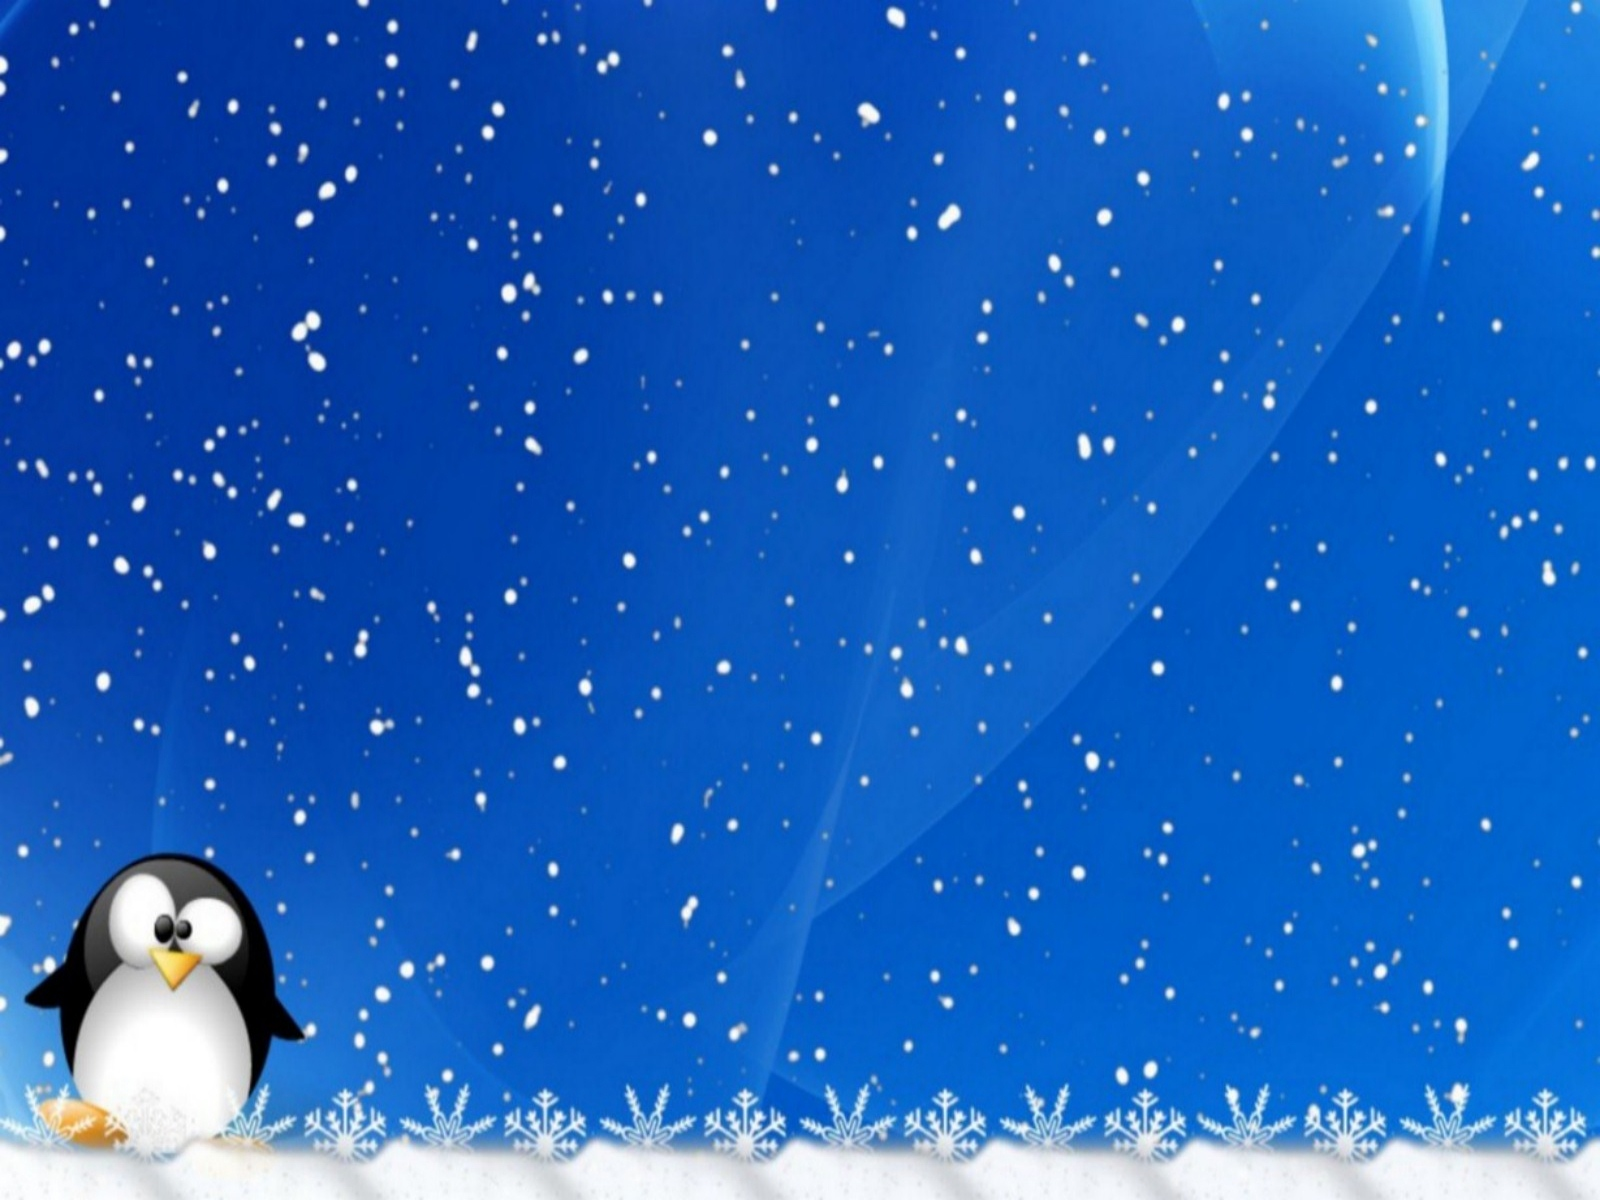 Free winter screensavers clipart.